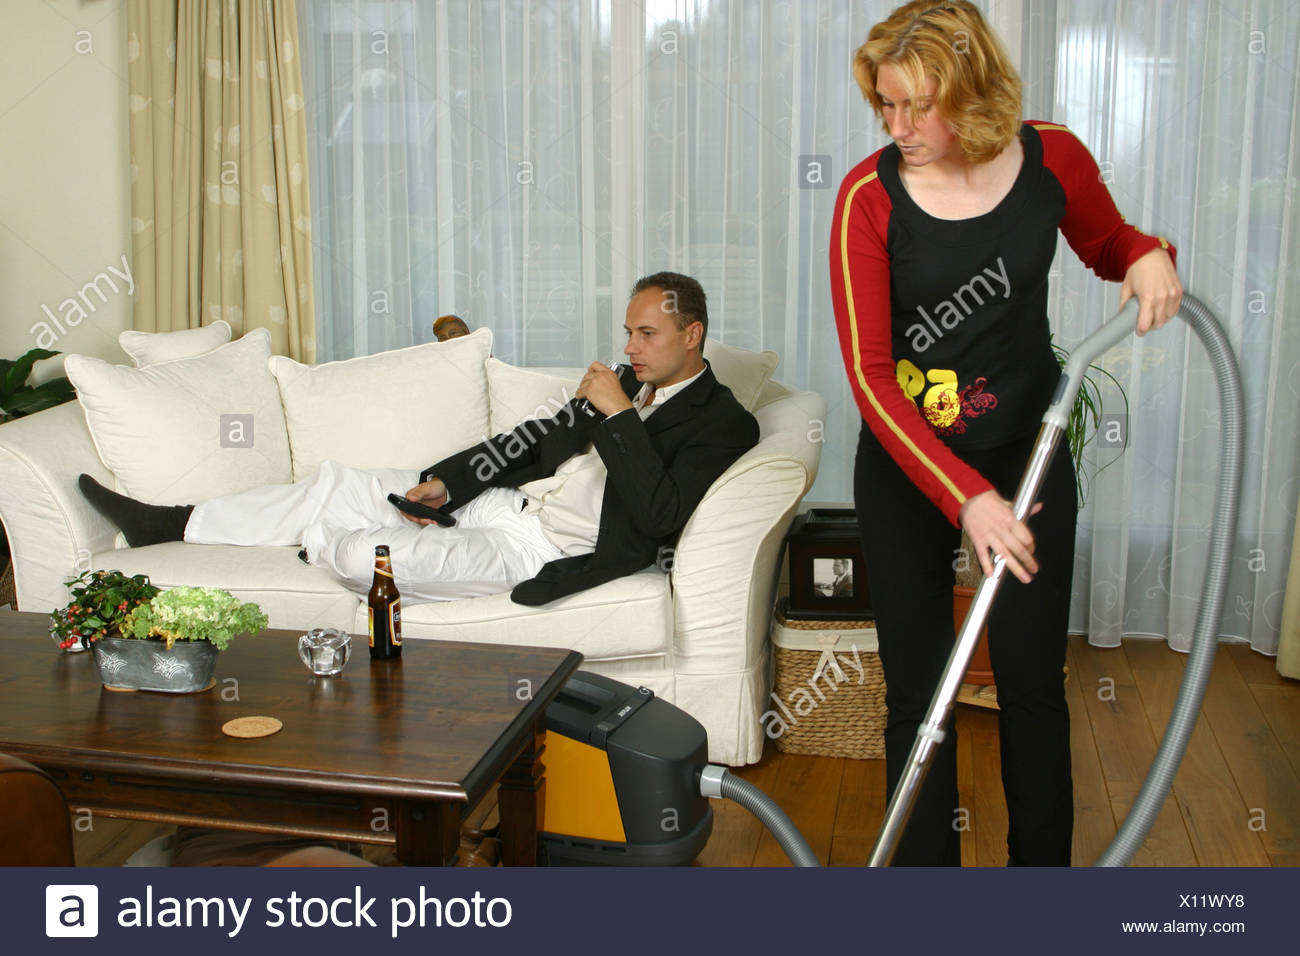 Housewife doing conventional housework and man resting after work - Stock Image